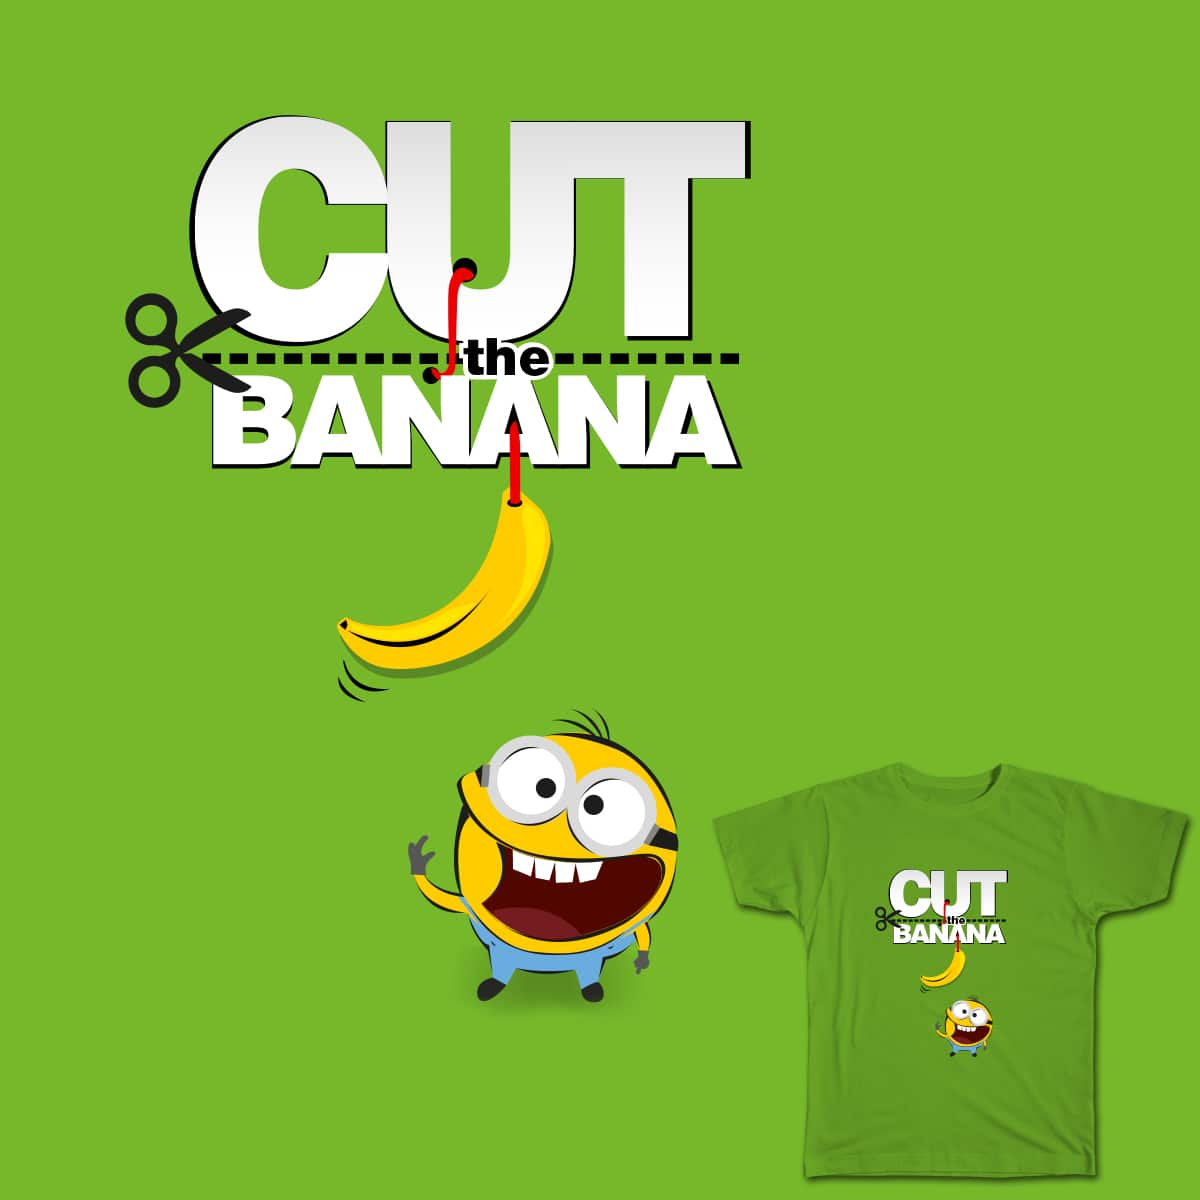 Cut-the-banana by sansanlee on Threadless